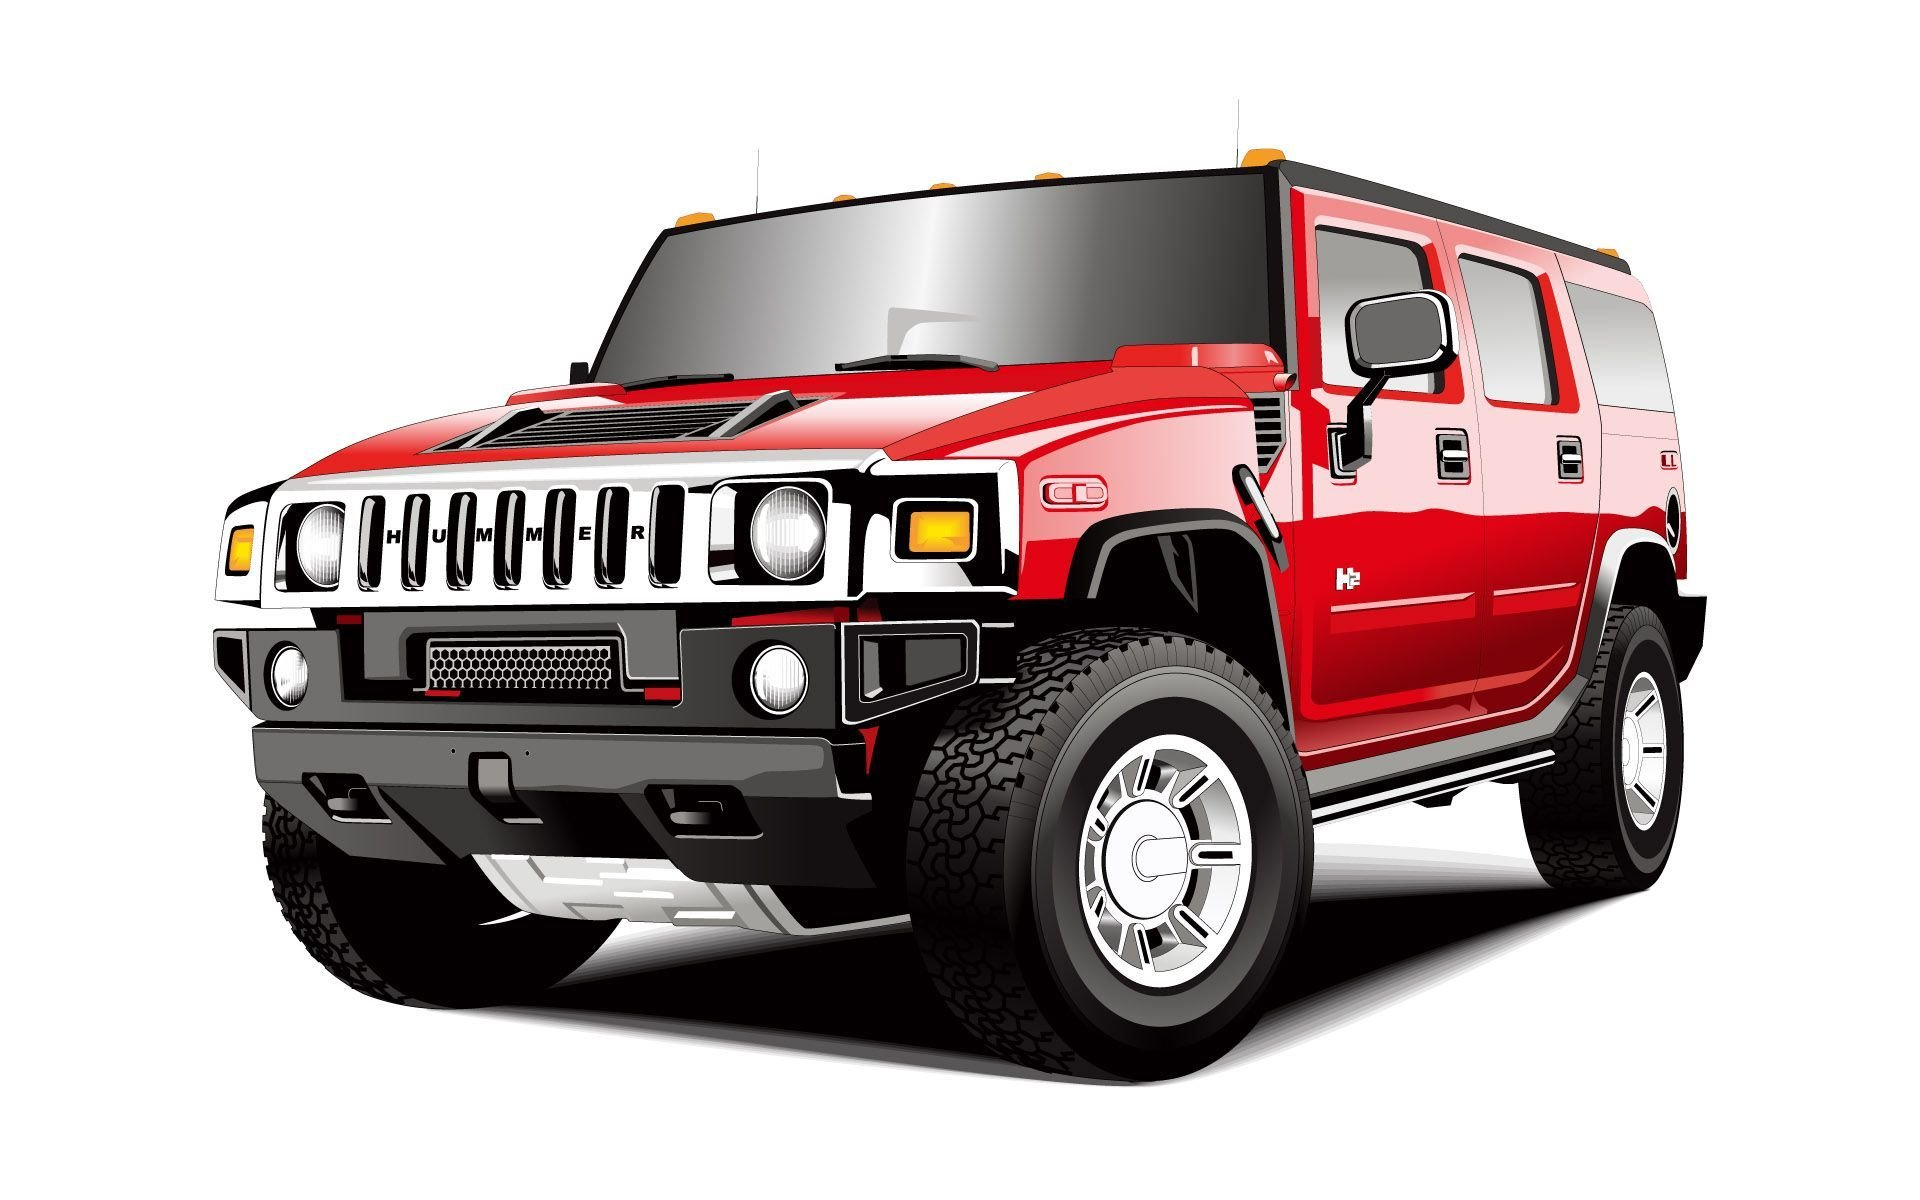 Latest Red Hummer Concept Hd Wallpaper Hummer Hd Wallpapers Free Download